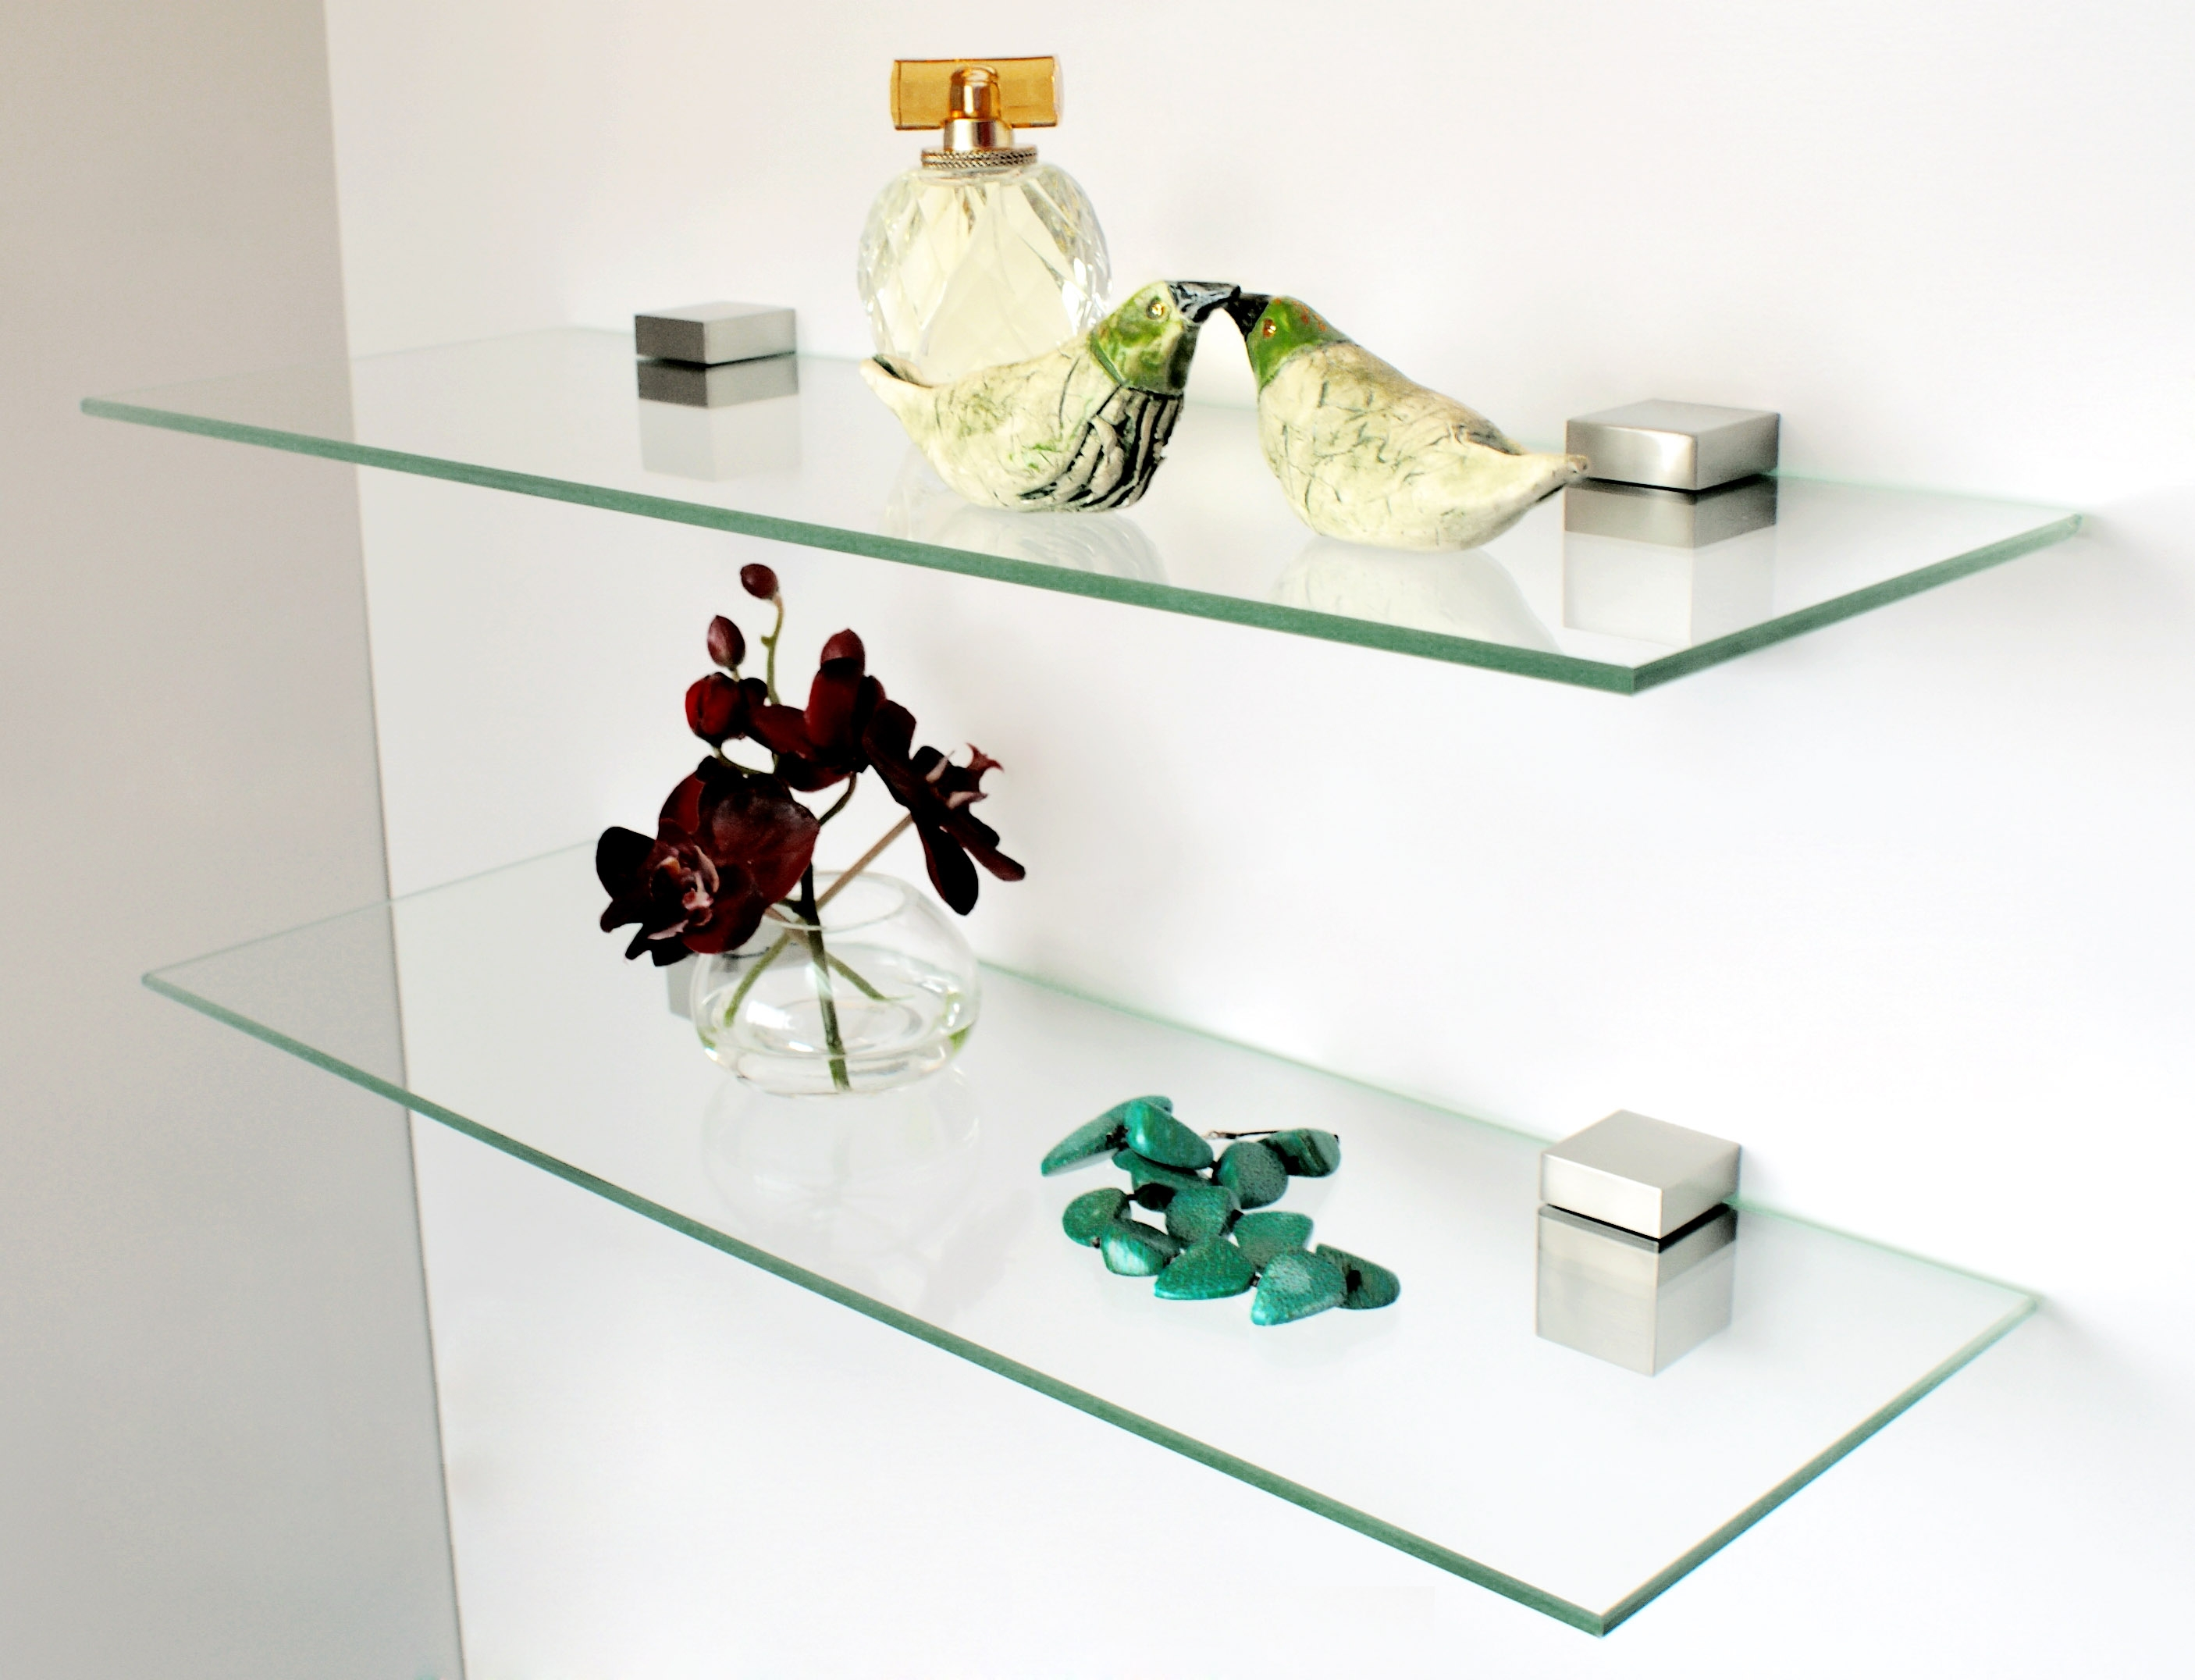 15 Collection of Floating Glass Shelves